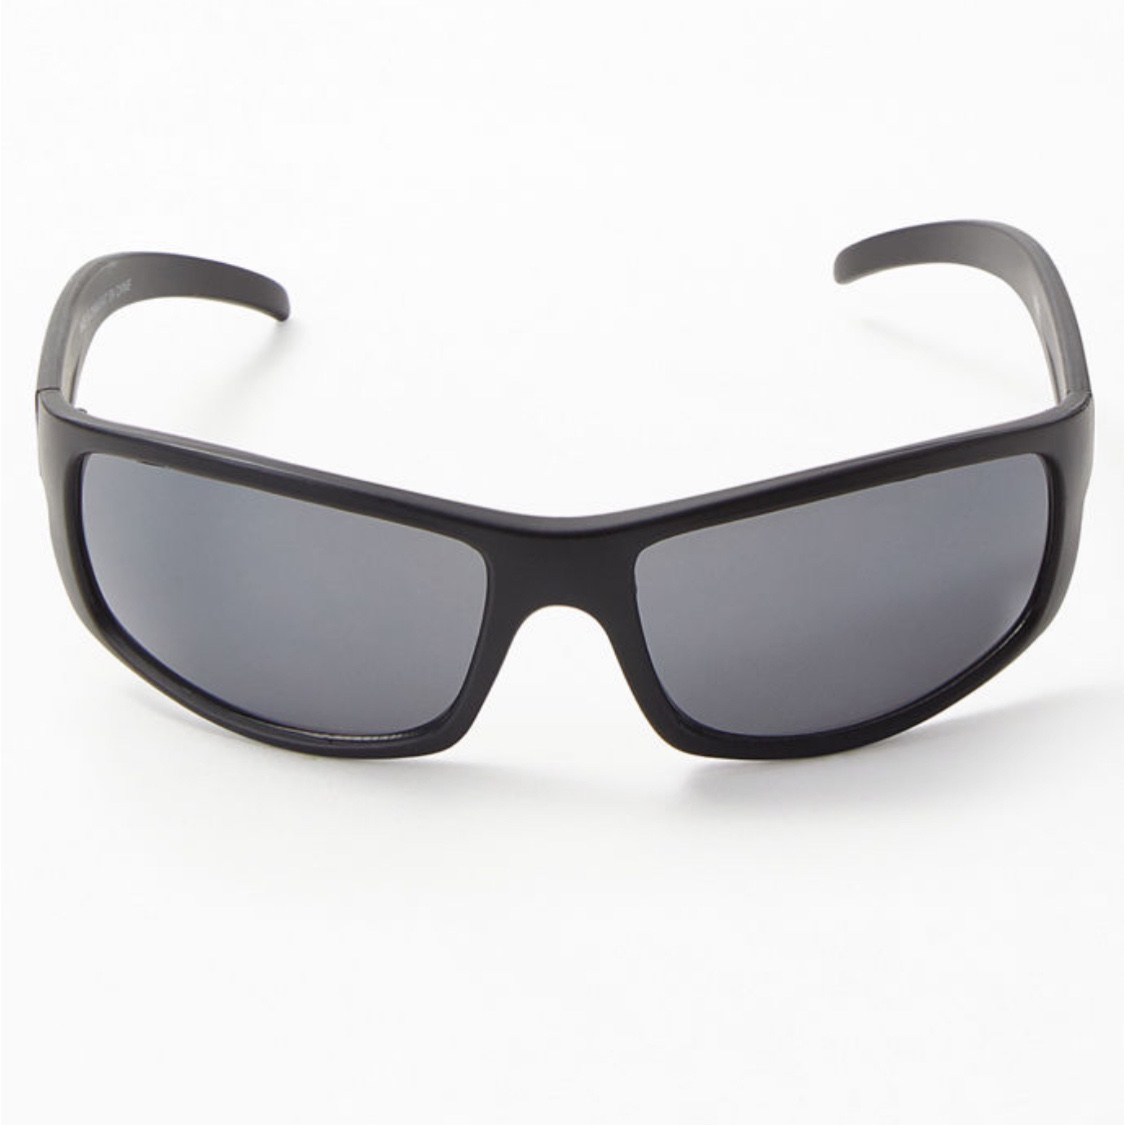 Product Image 1 - Men's Black Sunglasses  Bought from Pacsun.